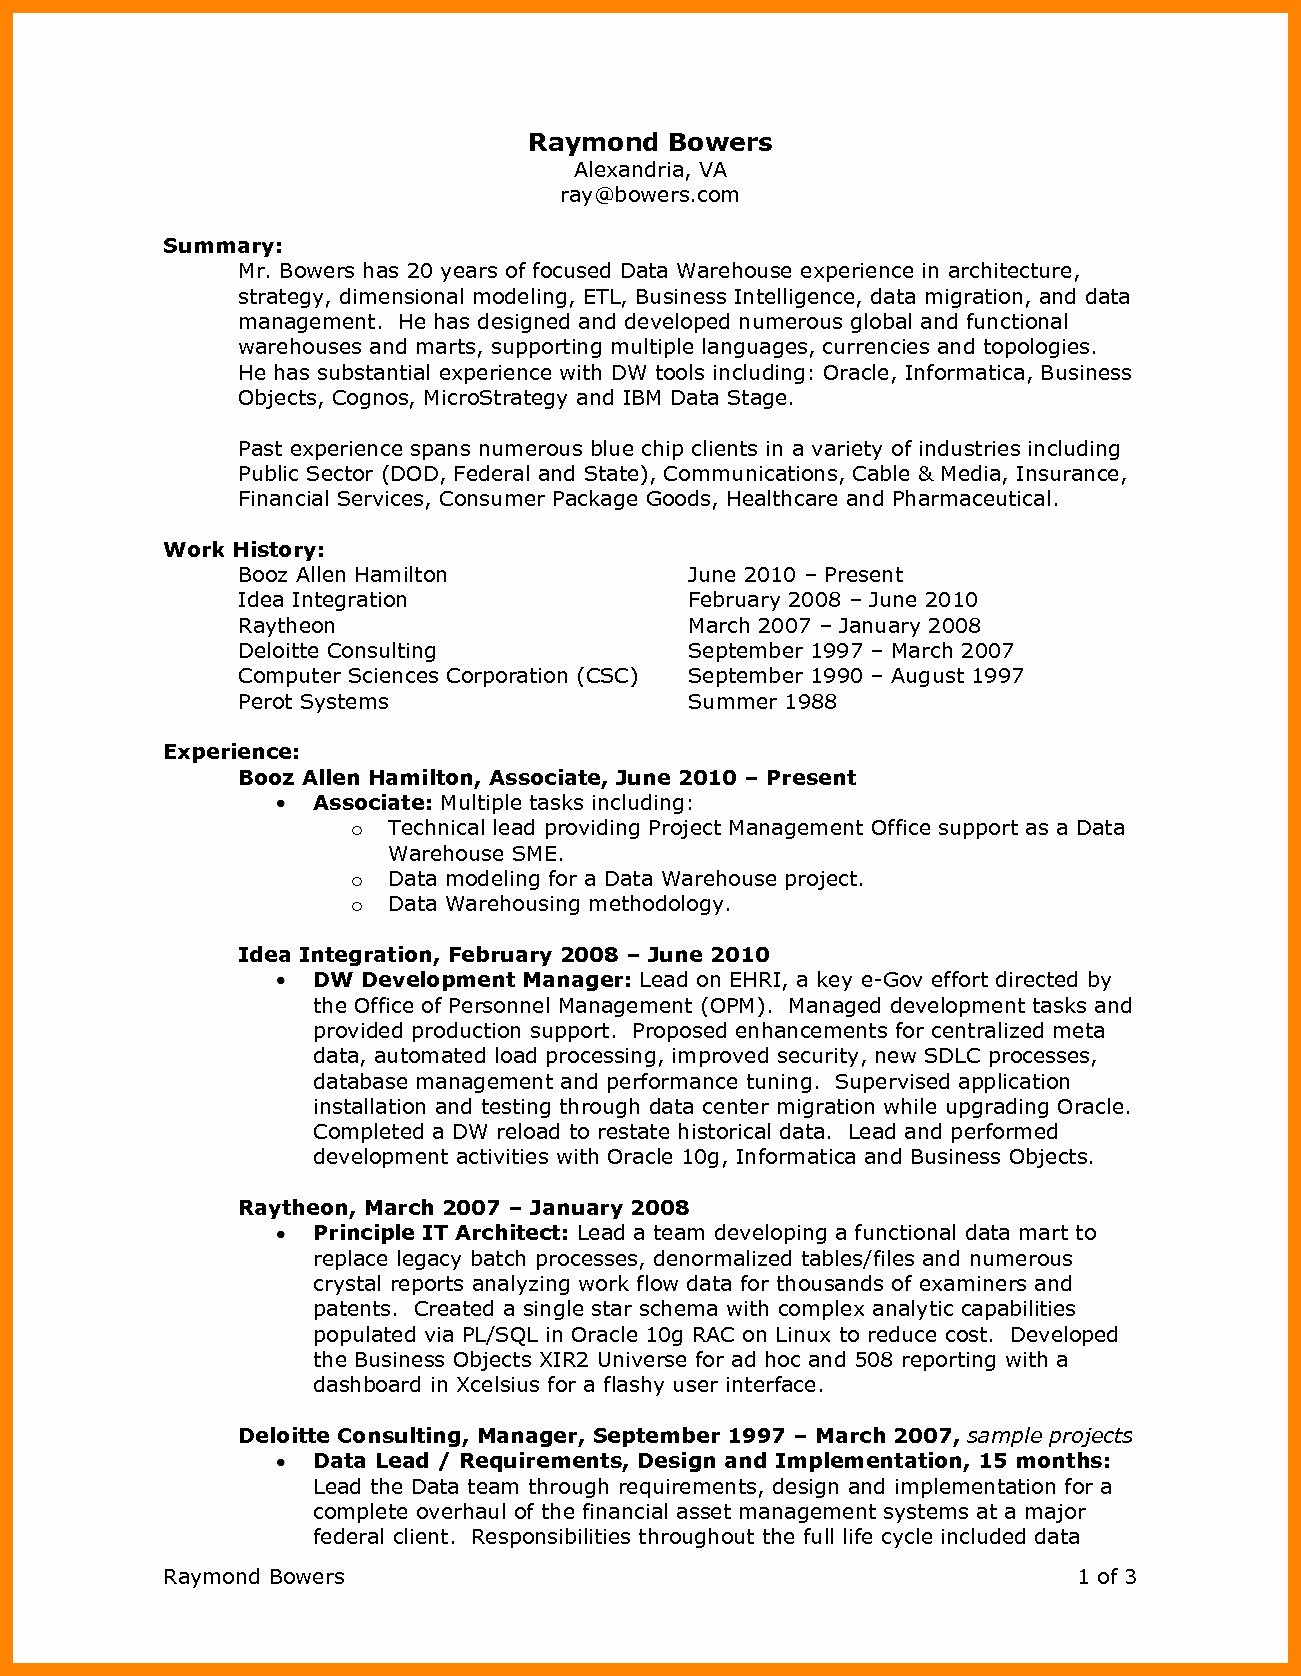 Internal Promotion Resume Sample - Resume for Internal Promotion Template Free Downloads Beautiful